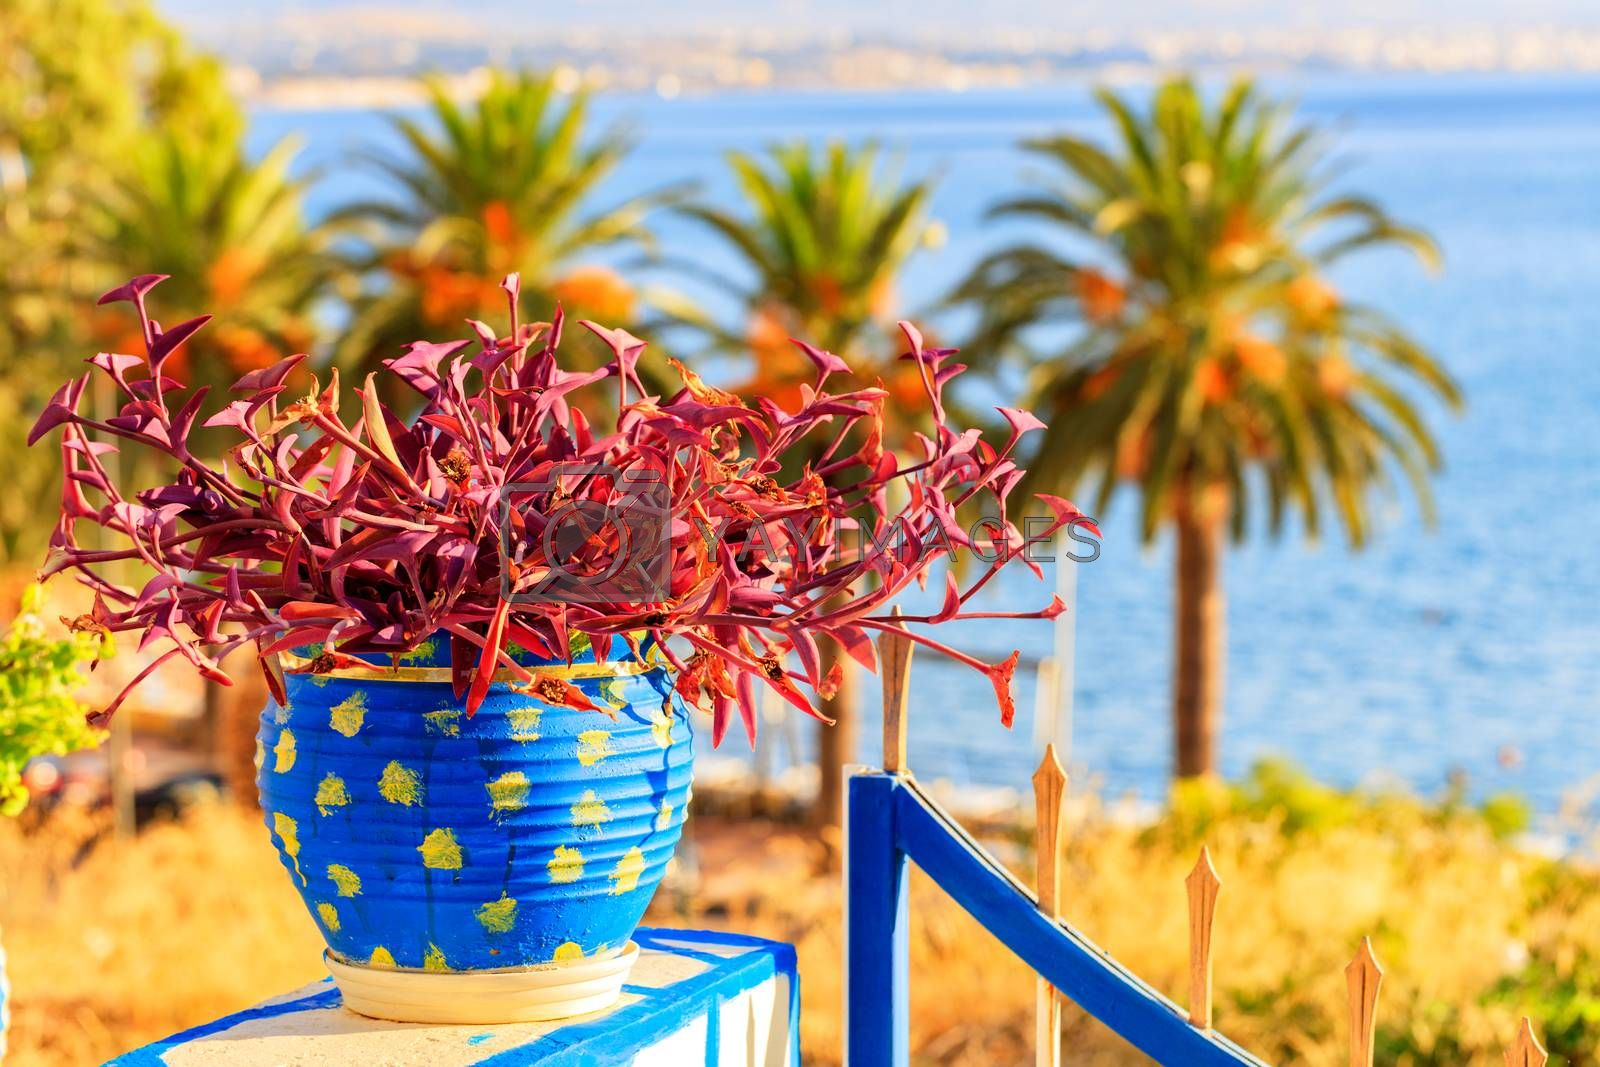 Colorful garden plants with red leaves in a blue pot close-up on a sunny summer day on the balcony building against the background of tall palm trees and the sea bay in Greece.